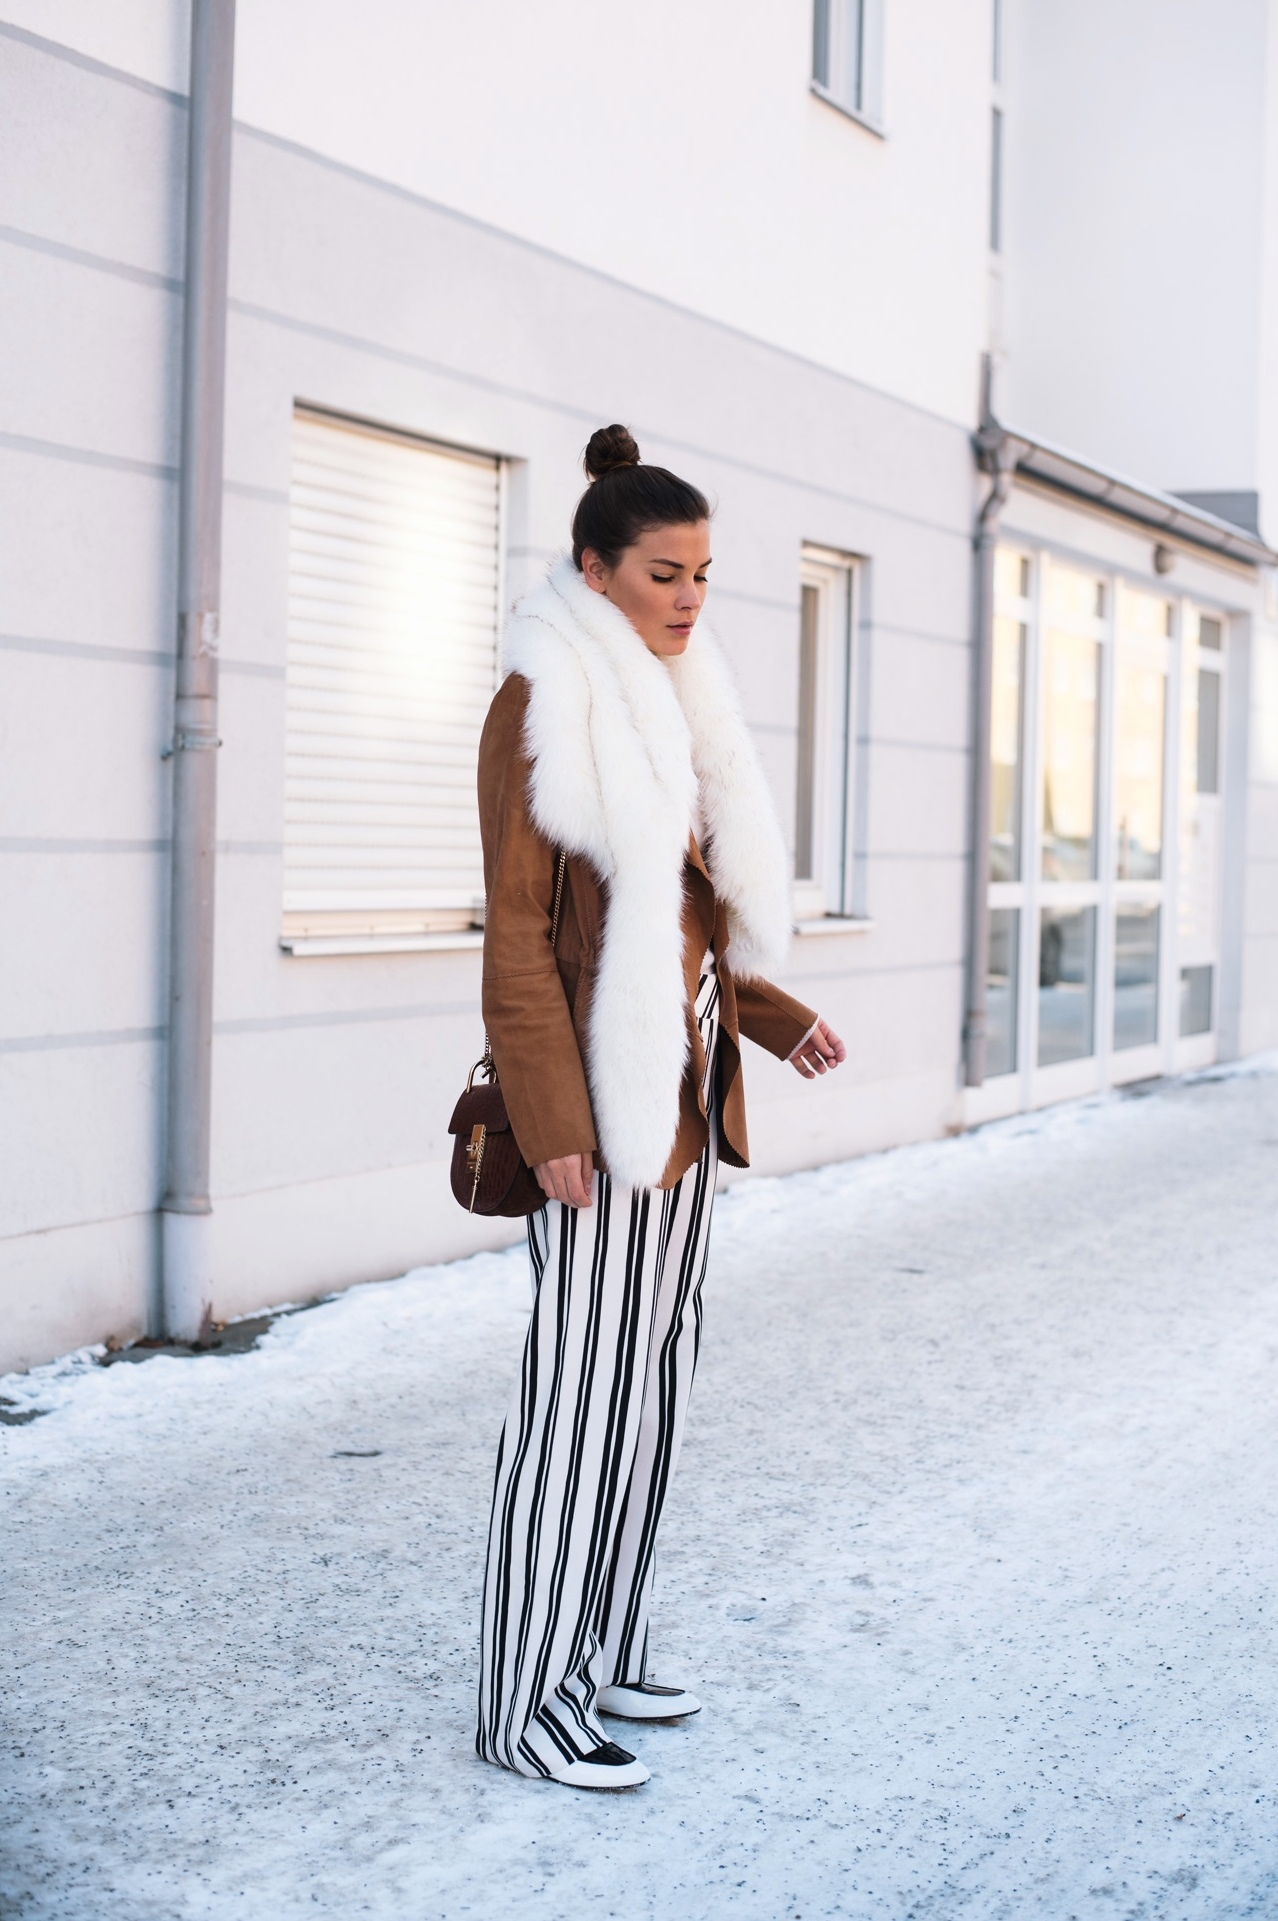 top-knot-beauty-hair-trends-blogger-style-fake-fur-scarf-fashiioncarpet